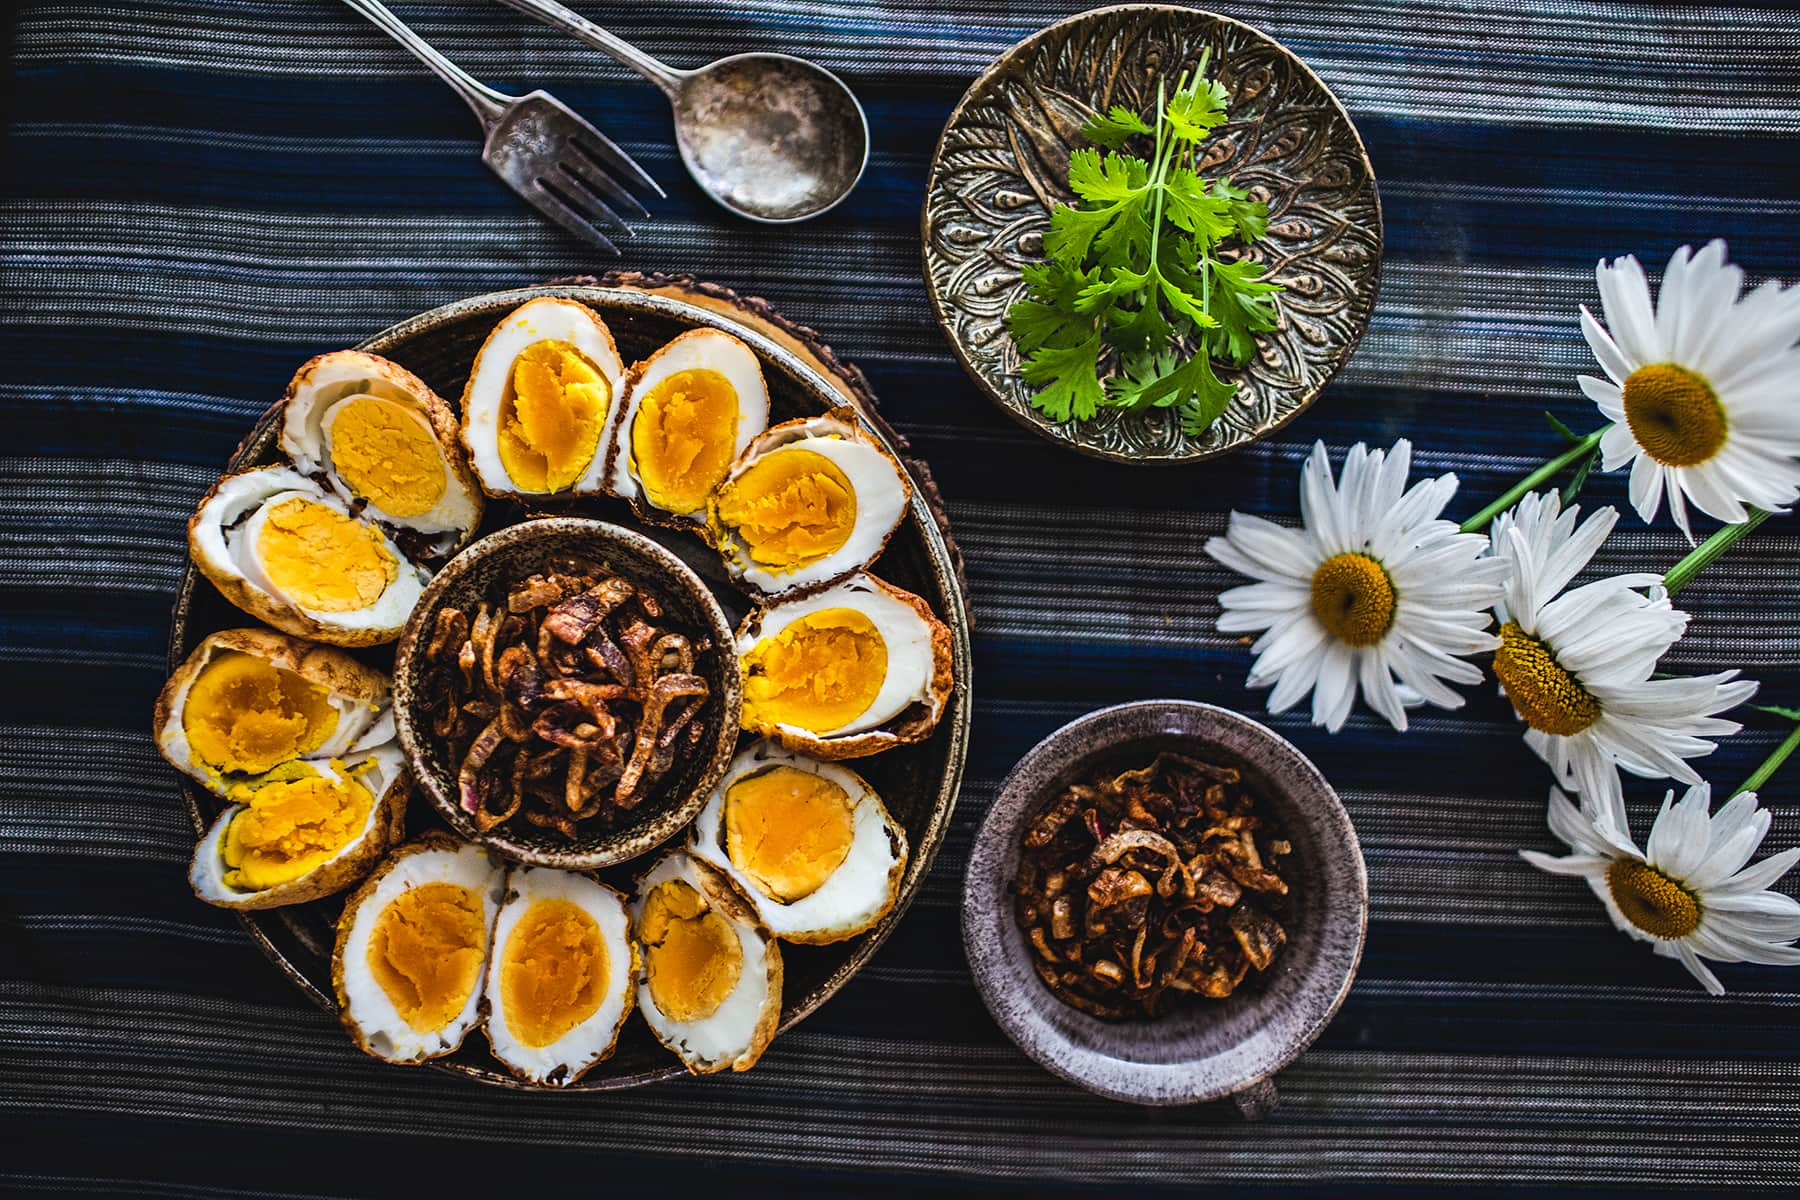 Thai Son-in-LawEggs is a simple recipe that useshard-boiled eggs,deep-fried until the skin is golden brown,then served with a perfectly balanced dressing made from tamarind juice, fish sauce, and palm sugar. #soninlaweggs #easythairecipe #padthaisauce